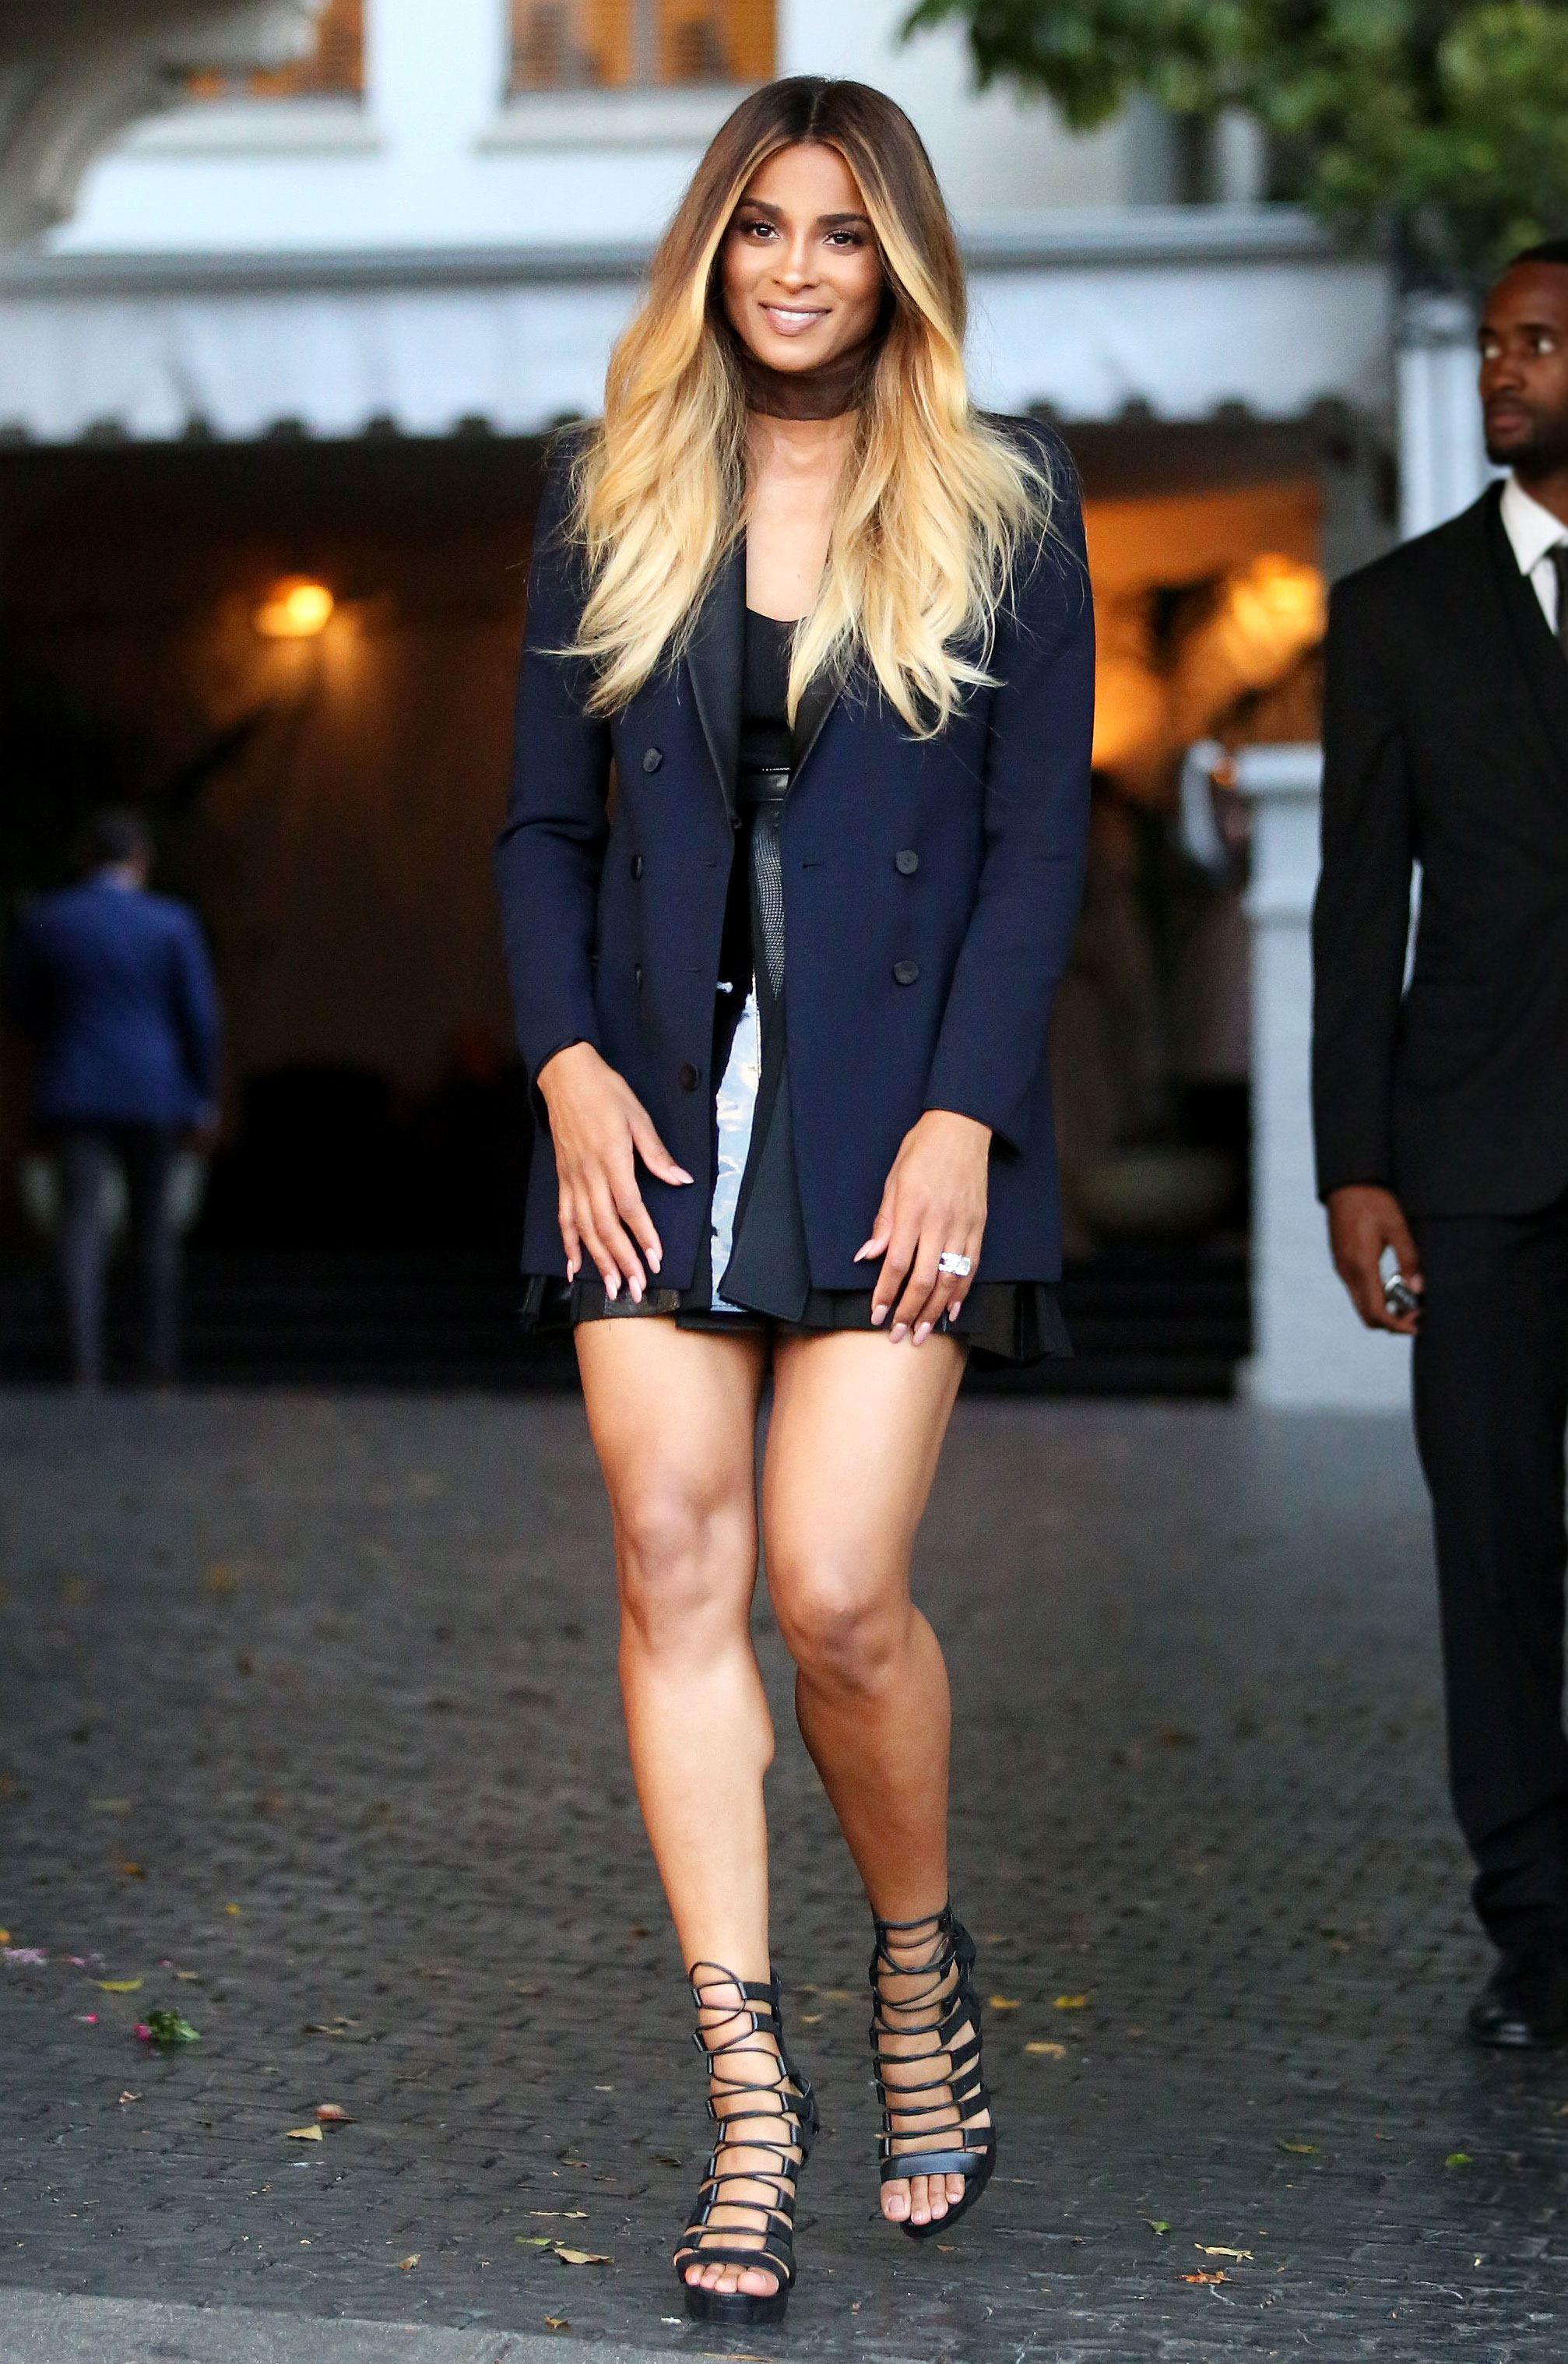 Ciaras legs. thick, yet tone. | Get Me Bodied | Pinterest